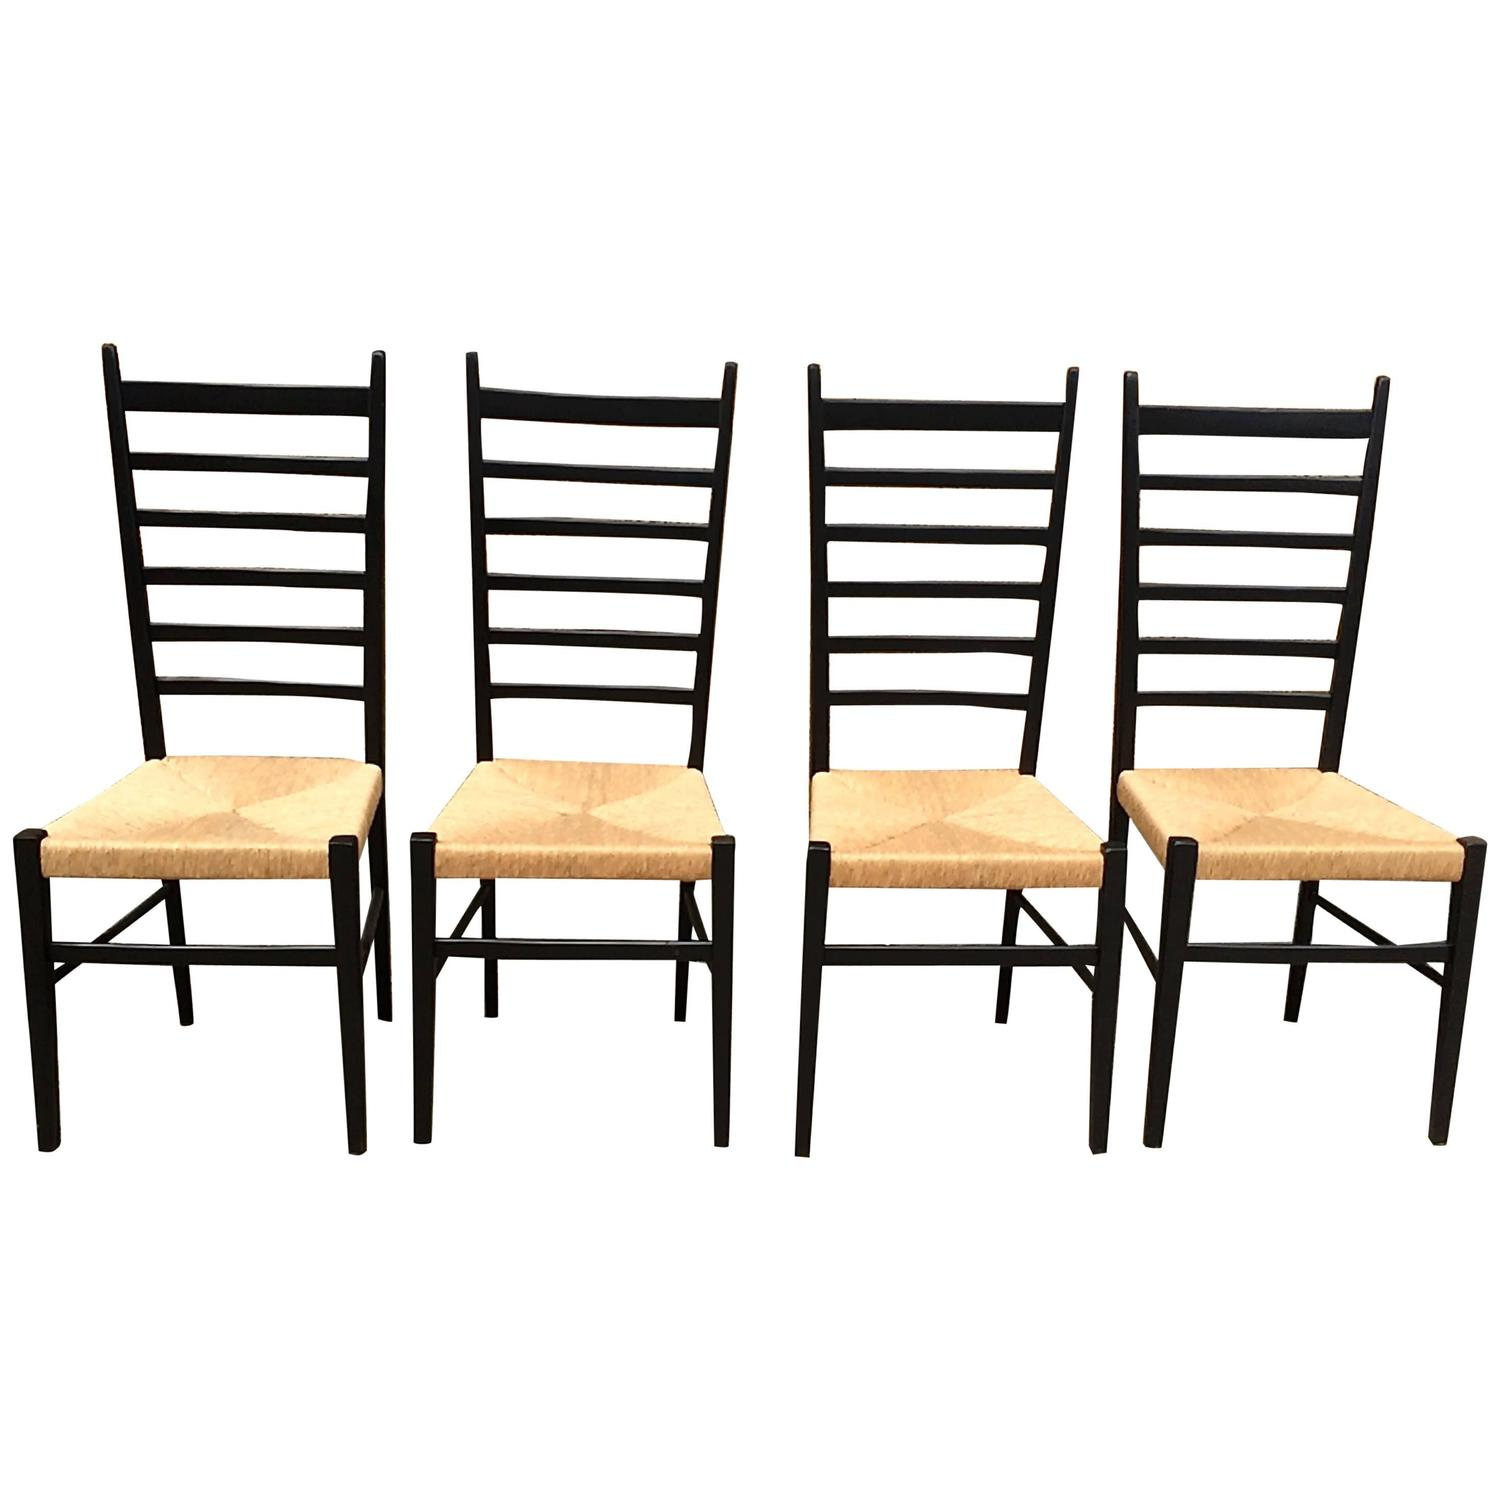 Set of Four Gio Ponti Ladder Back Chairs For Sale at 1stdibs